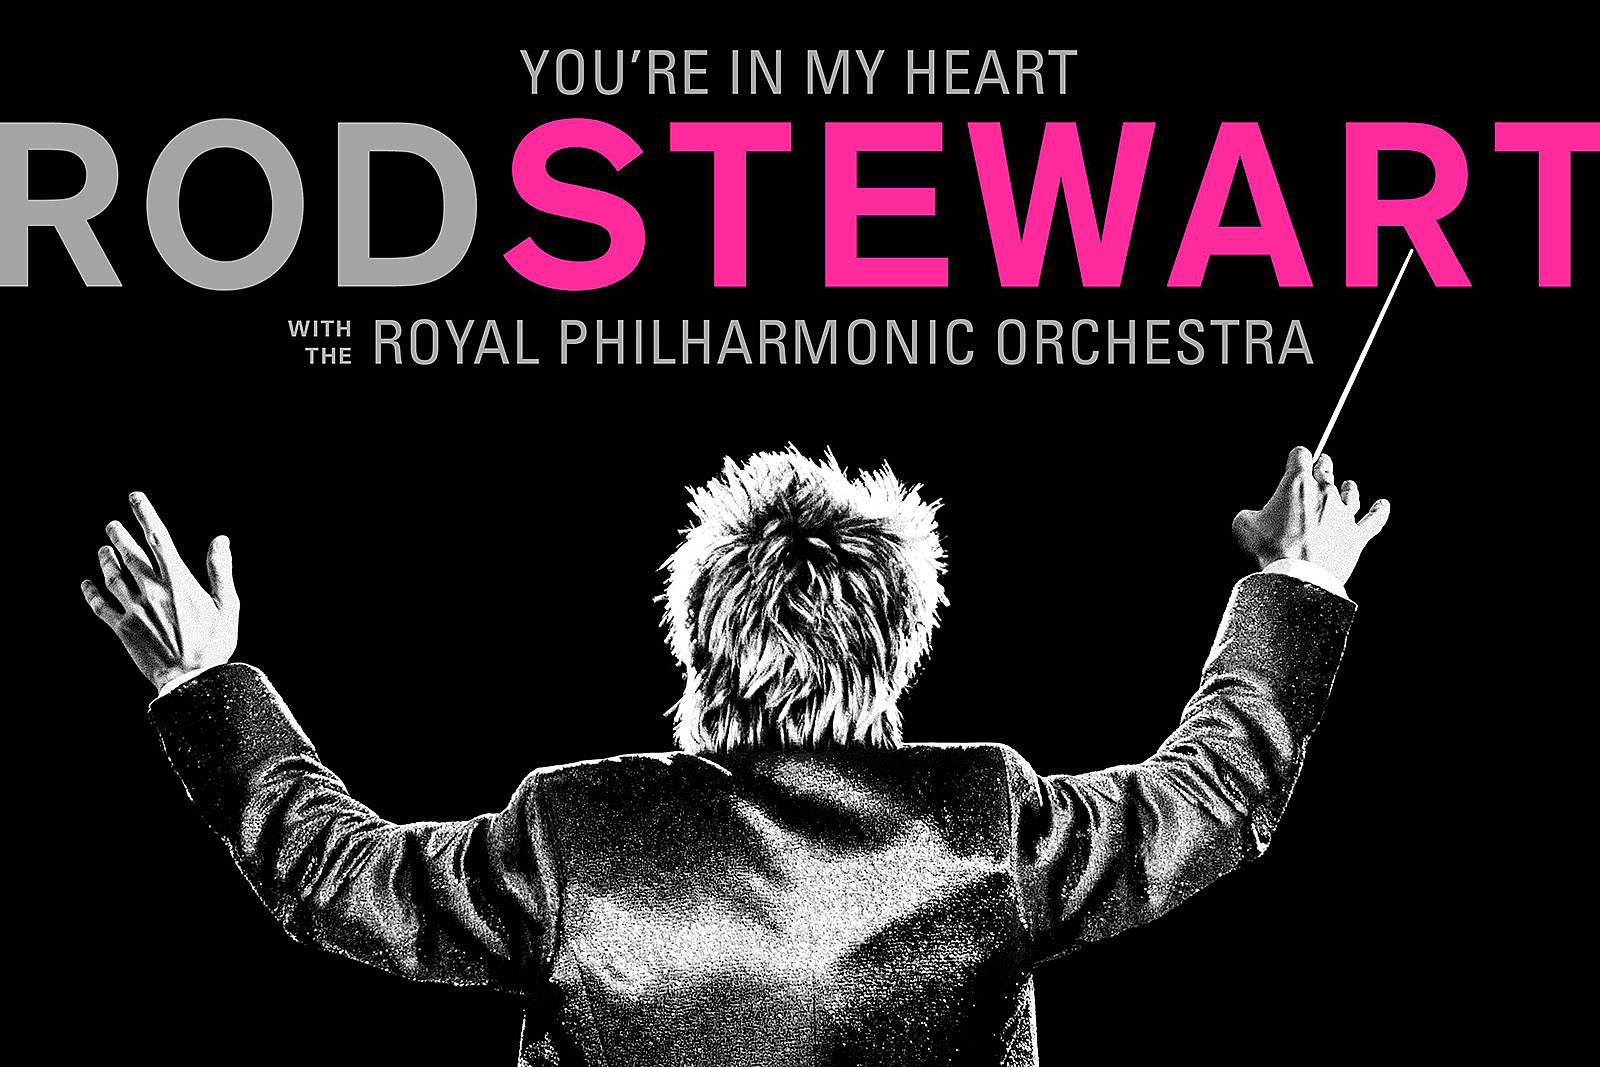 Rod Stewart Announces Orchestral Album 'You're in My Heart'